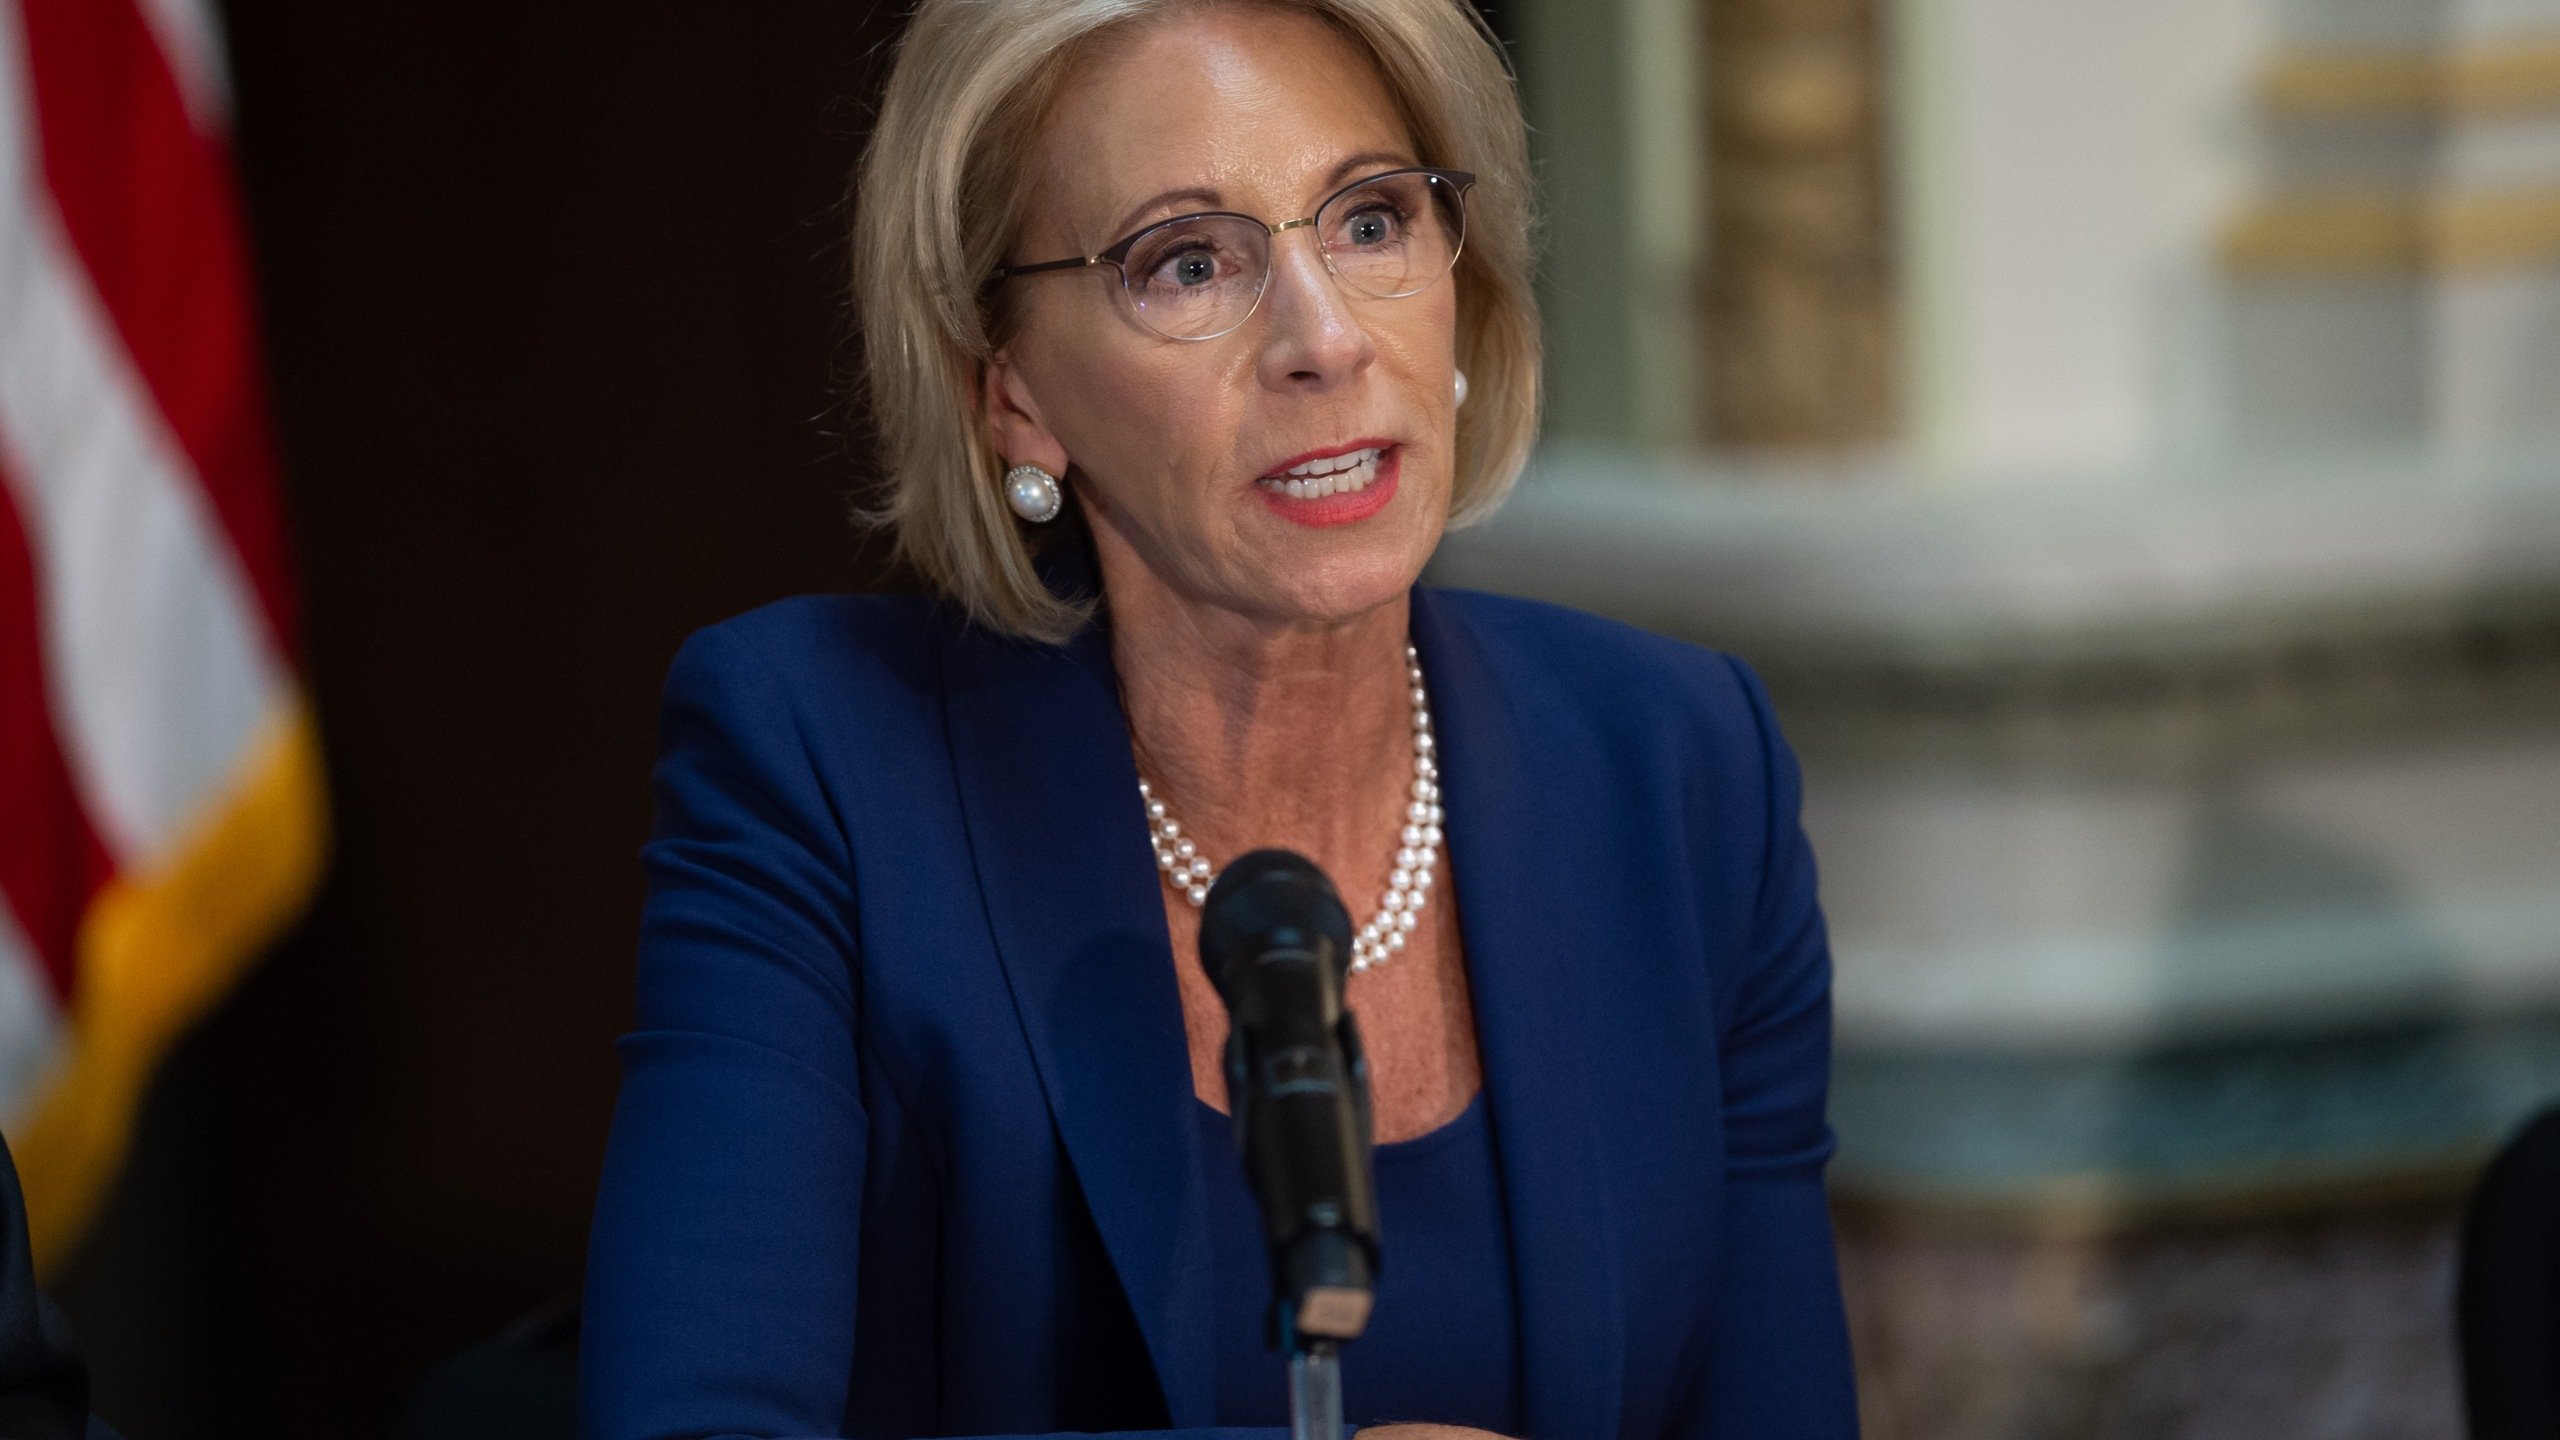 US Secretary of Education Betsy DeVos speaks during the fifth meeting of the Federal Commission on School Safety on August 16, 2018. (Credit: SAUL LOEB/AFP/Getty Images)